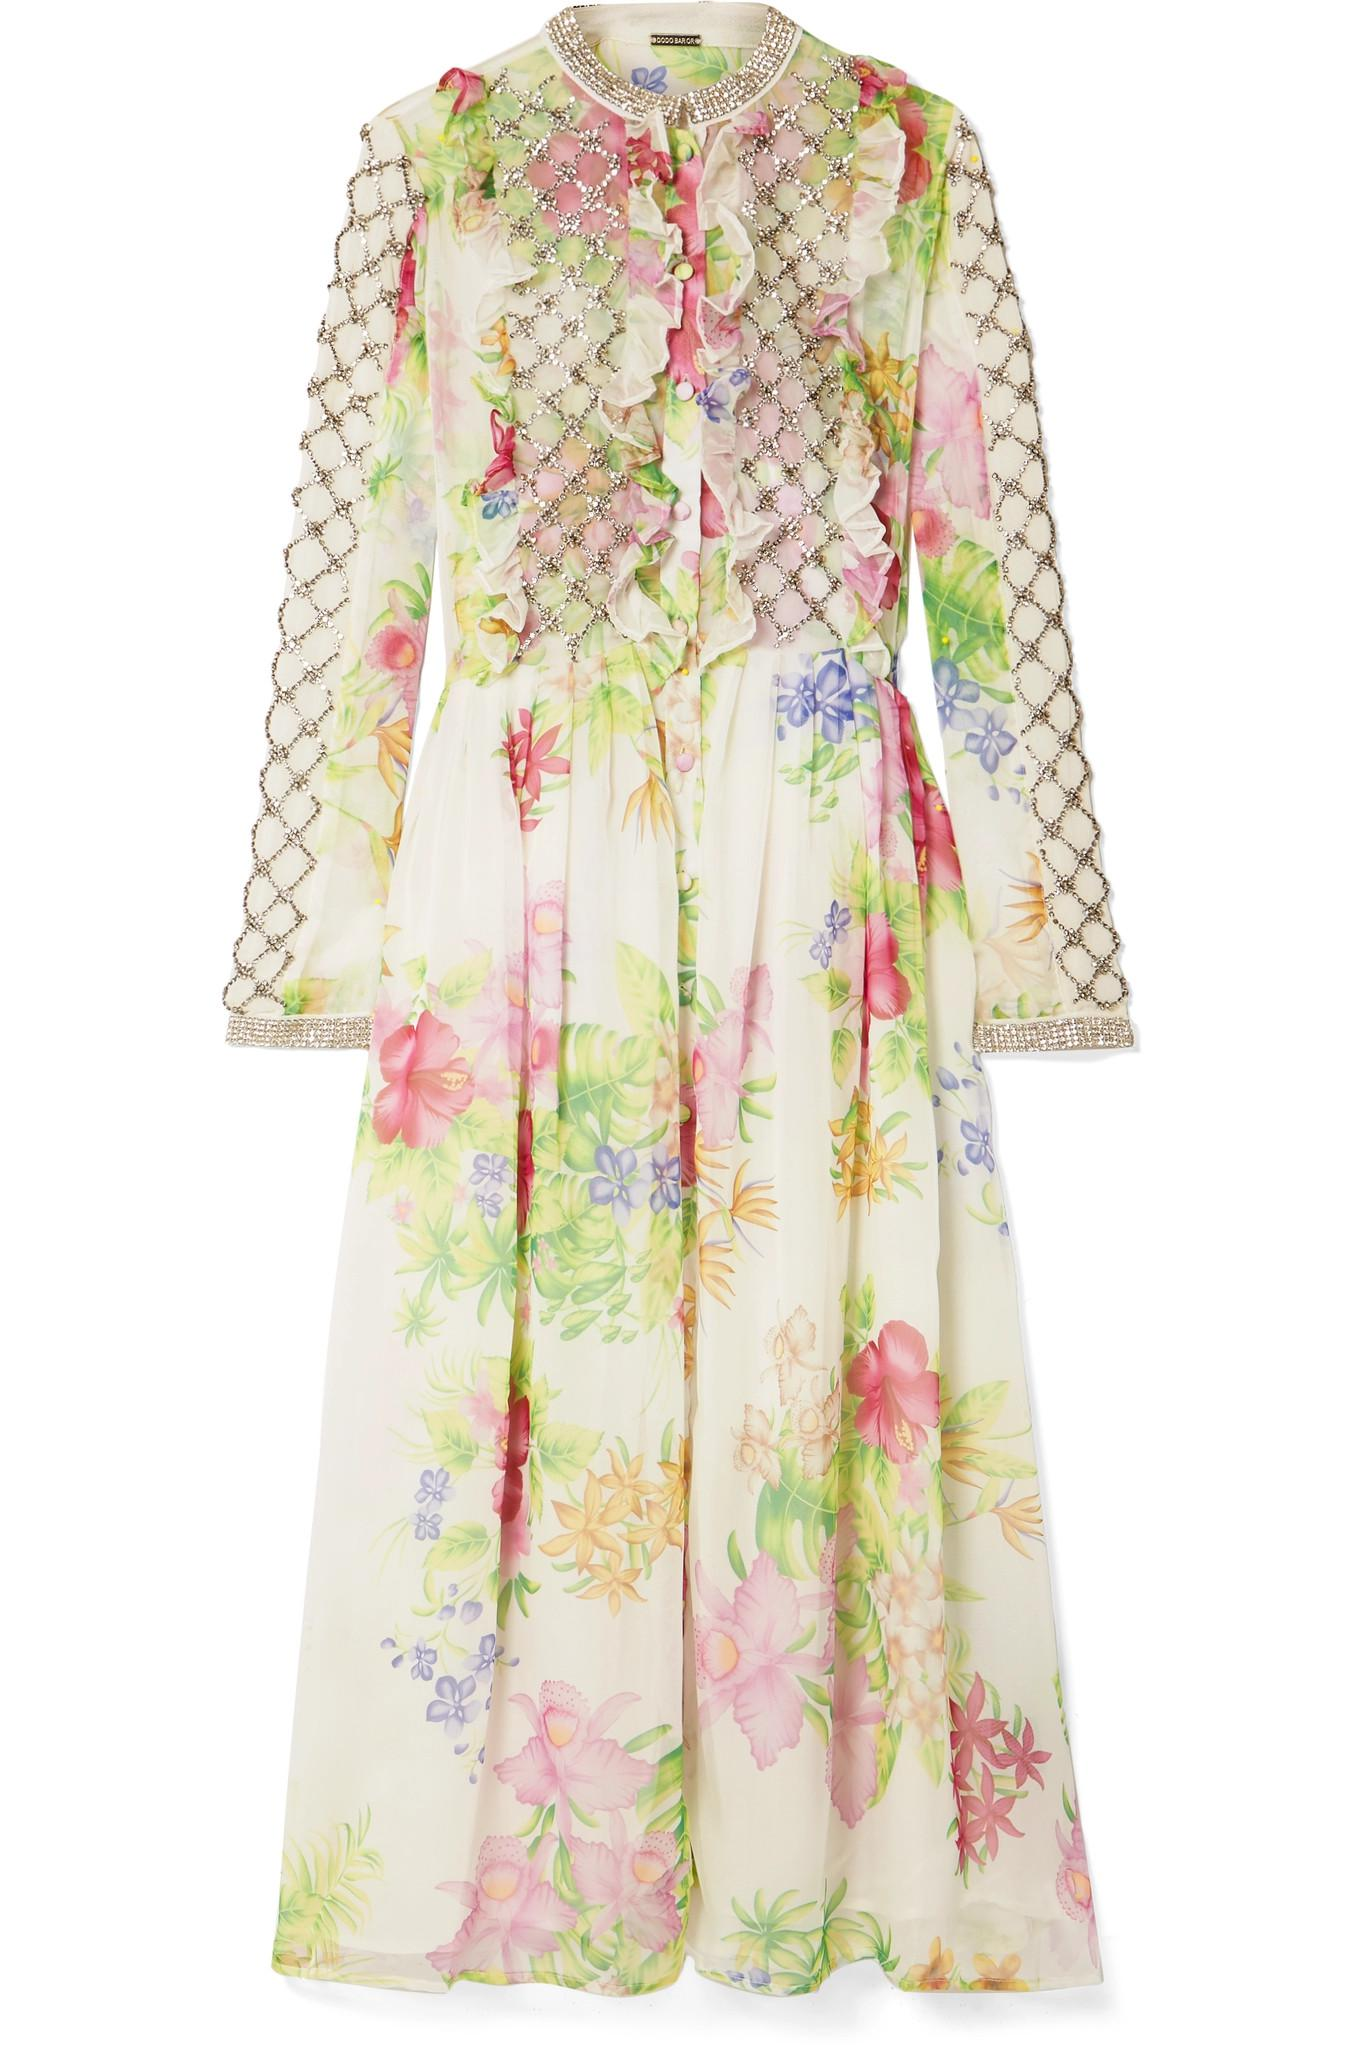 Crystal-embellished Floral-print Chiffon Midi Dress - White Dodo Bar Or Find Great Cheap Online New Arrival Fashion Geniue Stockist Cheap Price Cheap Authentic Outlet 9tW0eT